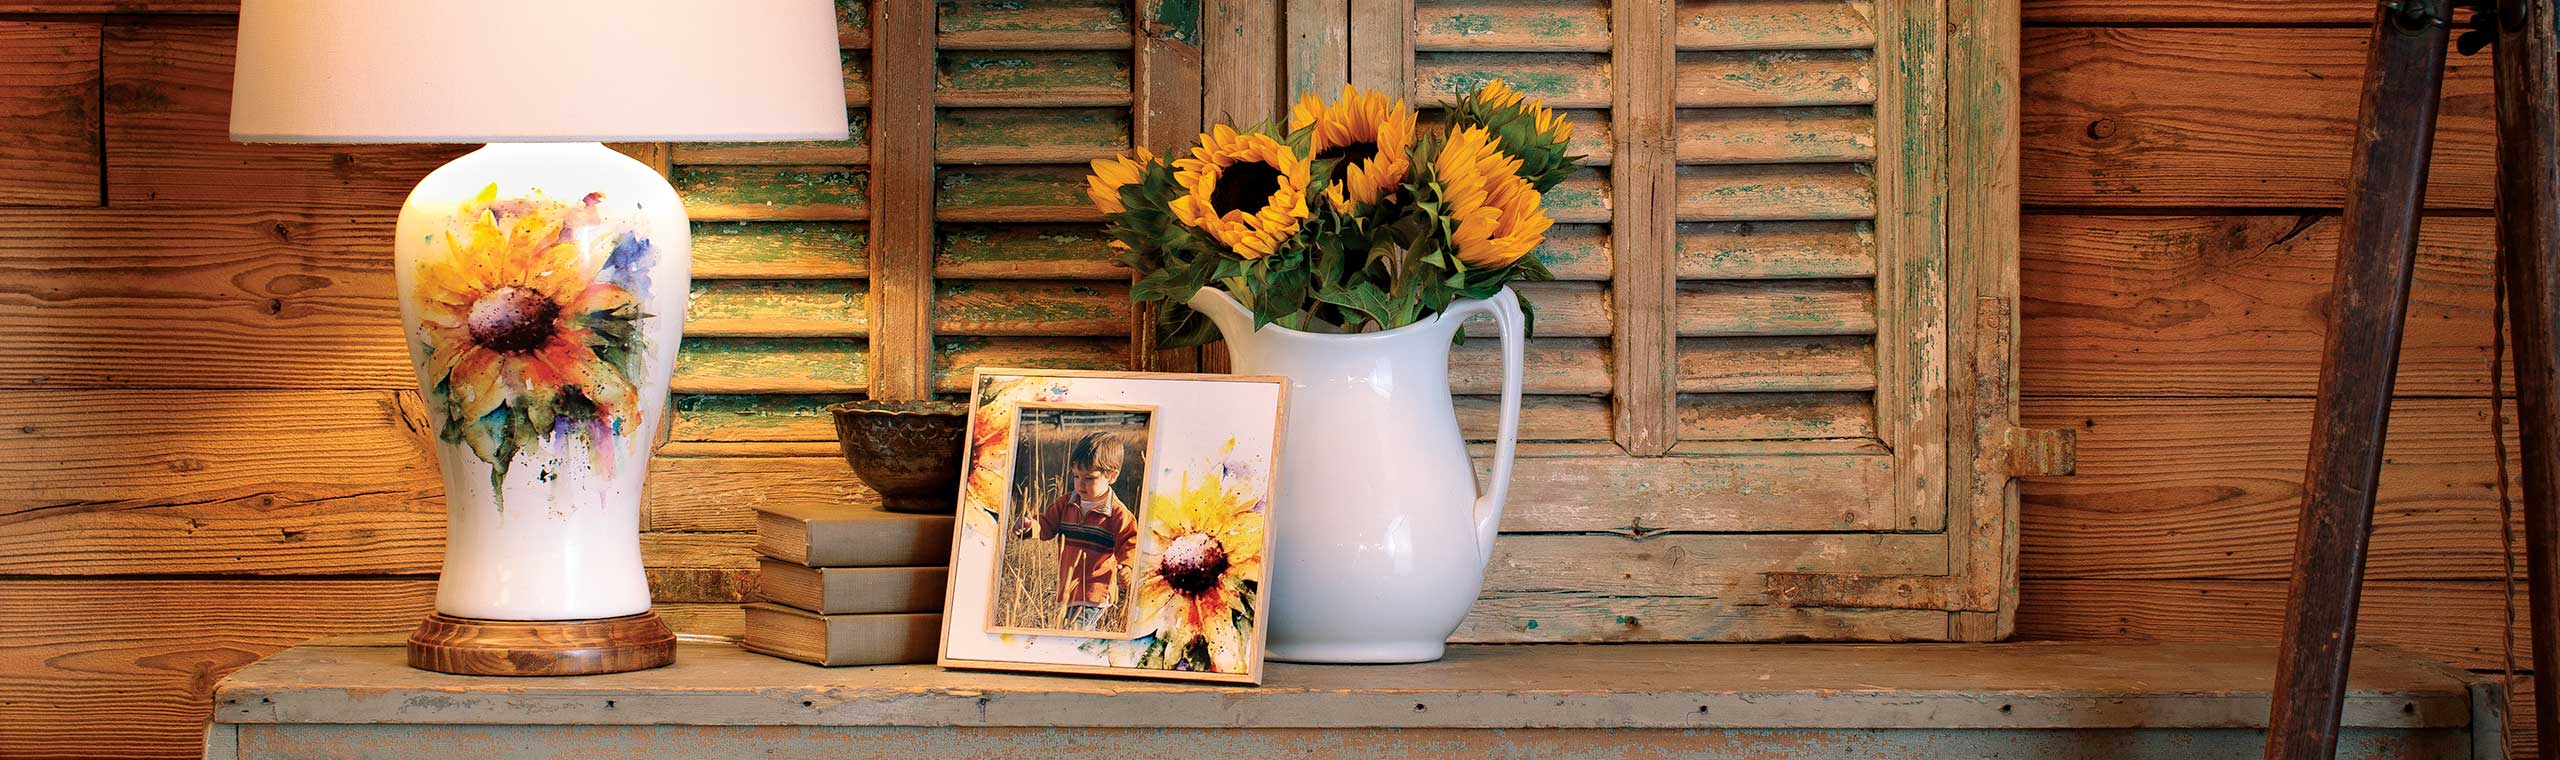 Large white table lamp with bright yellow sunflower watercolor artwork sitting on rustic table